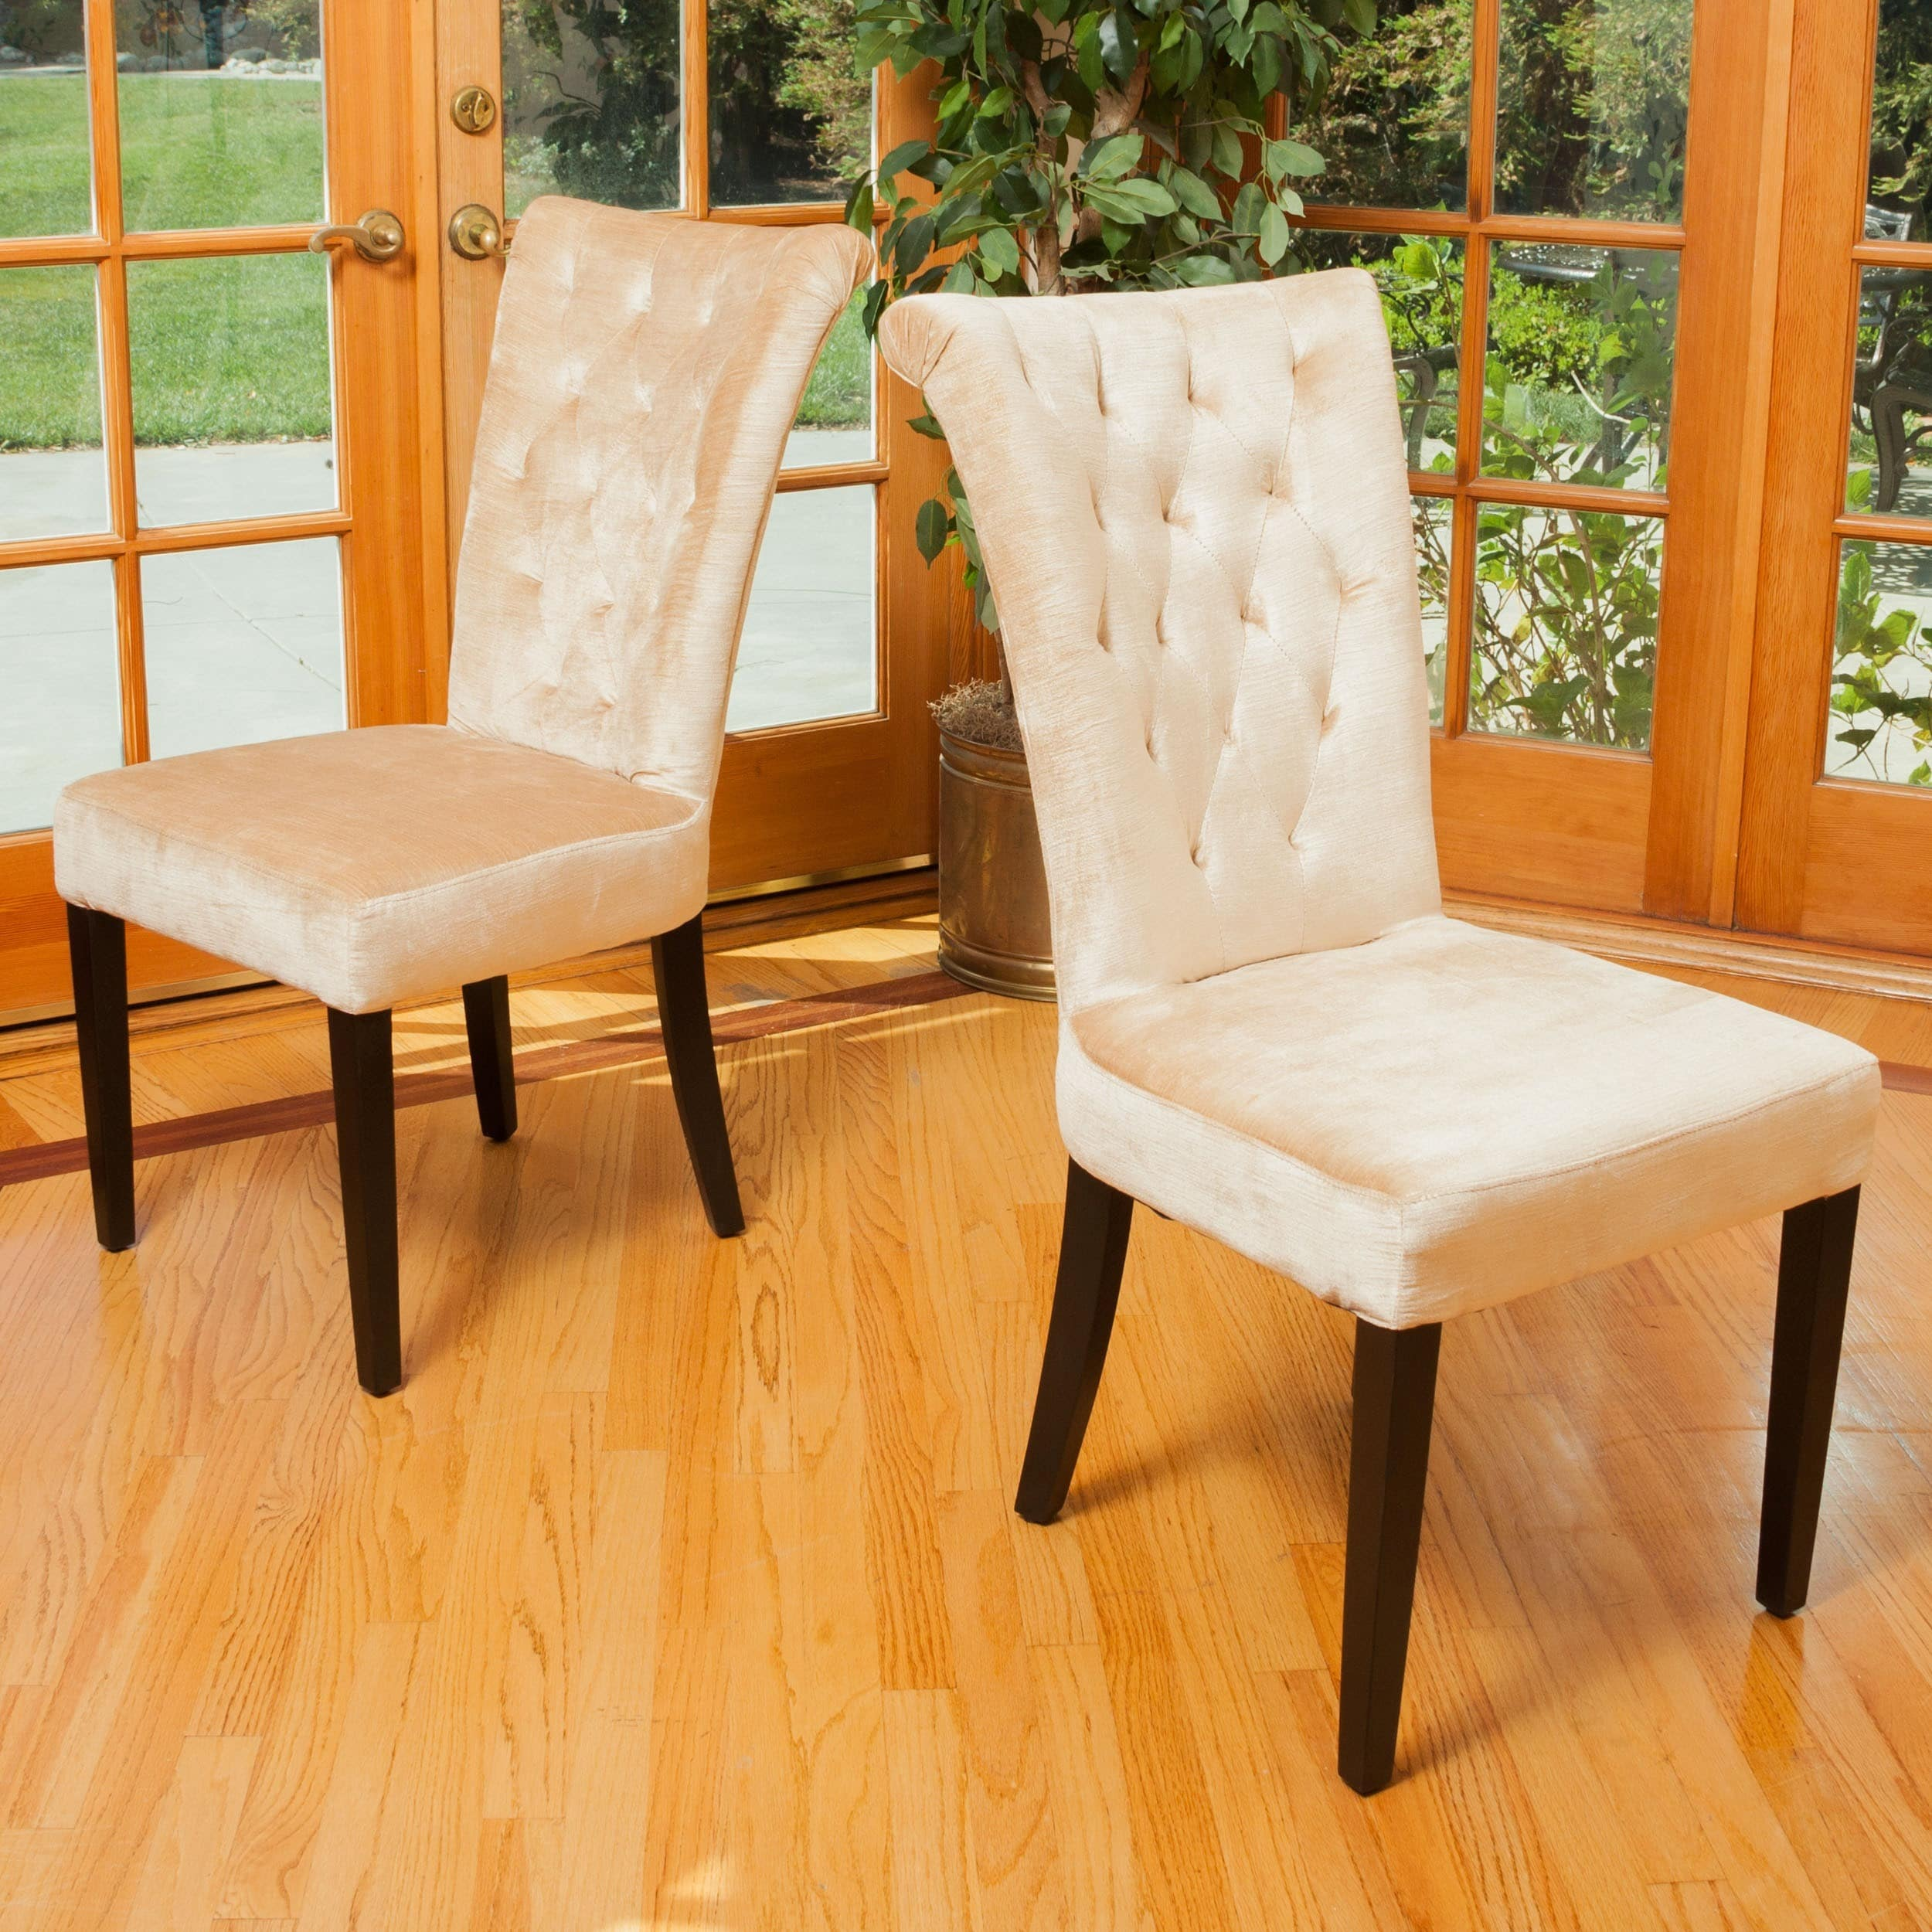 Viola Velvet Dining Chair Set of 2 by Christopher Knight Home